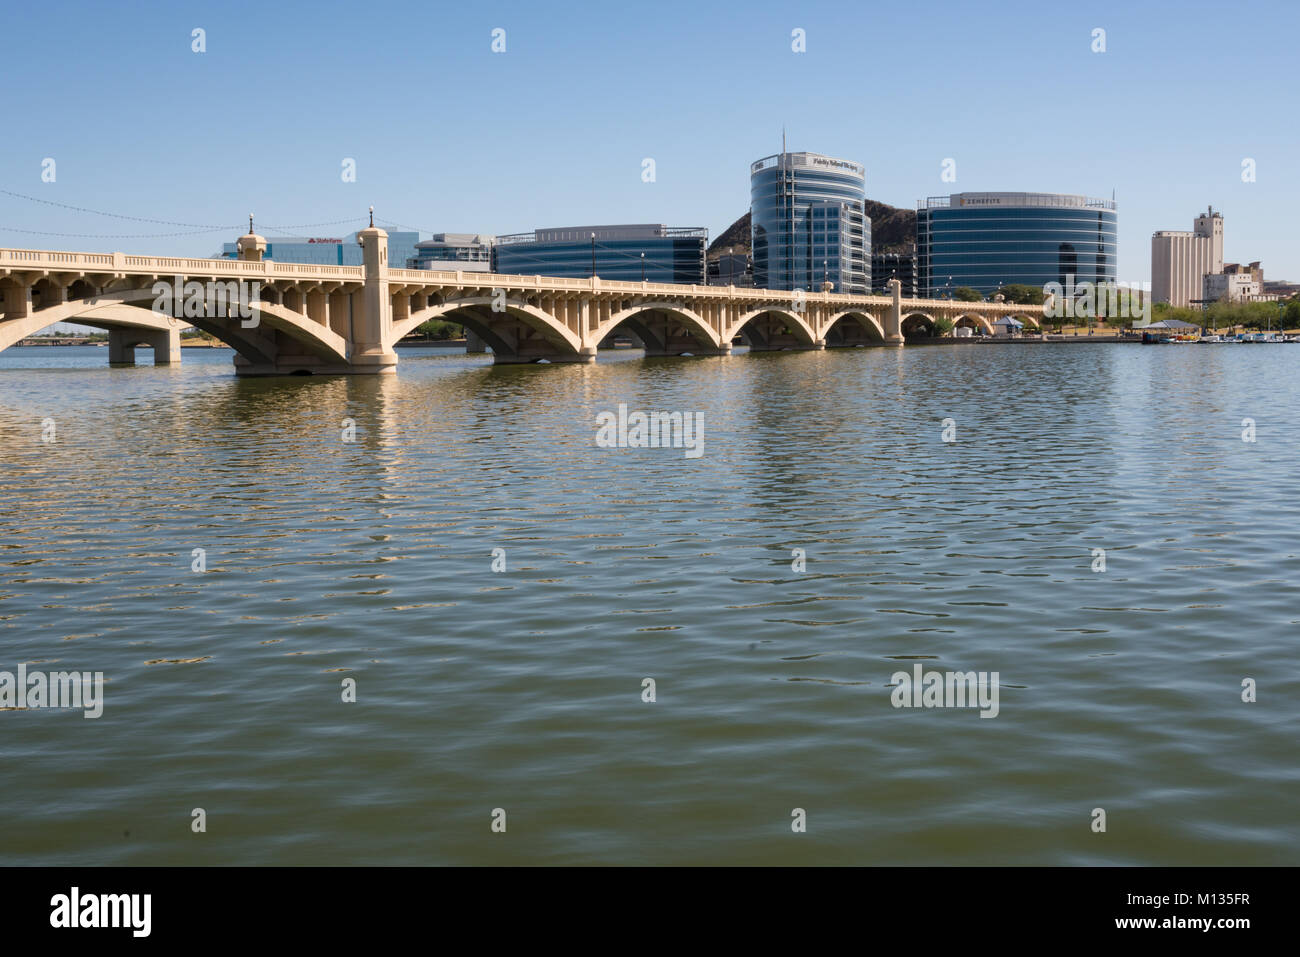 TEMPE, AZ - OCTOBER 25, 2017: The city skyline of Tempe, AZ from across the Salt River at Tempe Town Lake - Stock Image